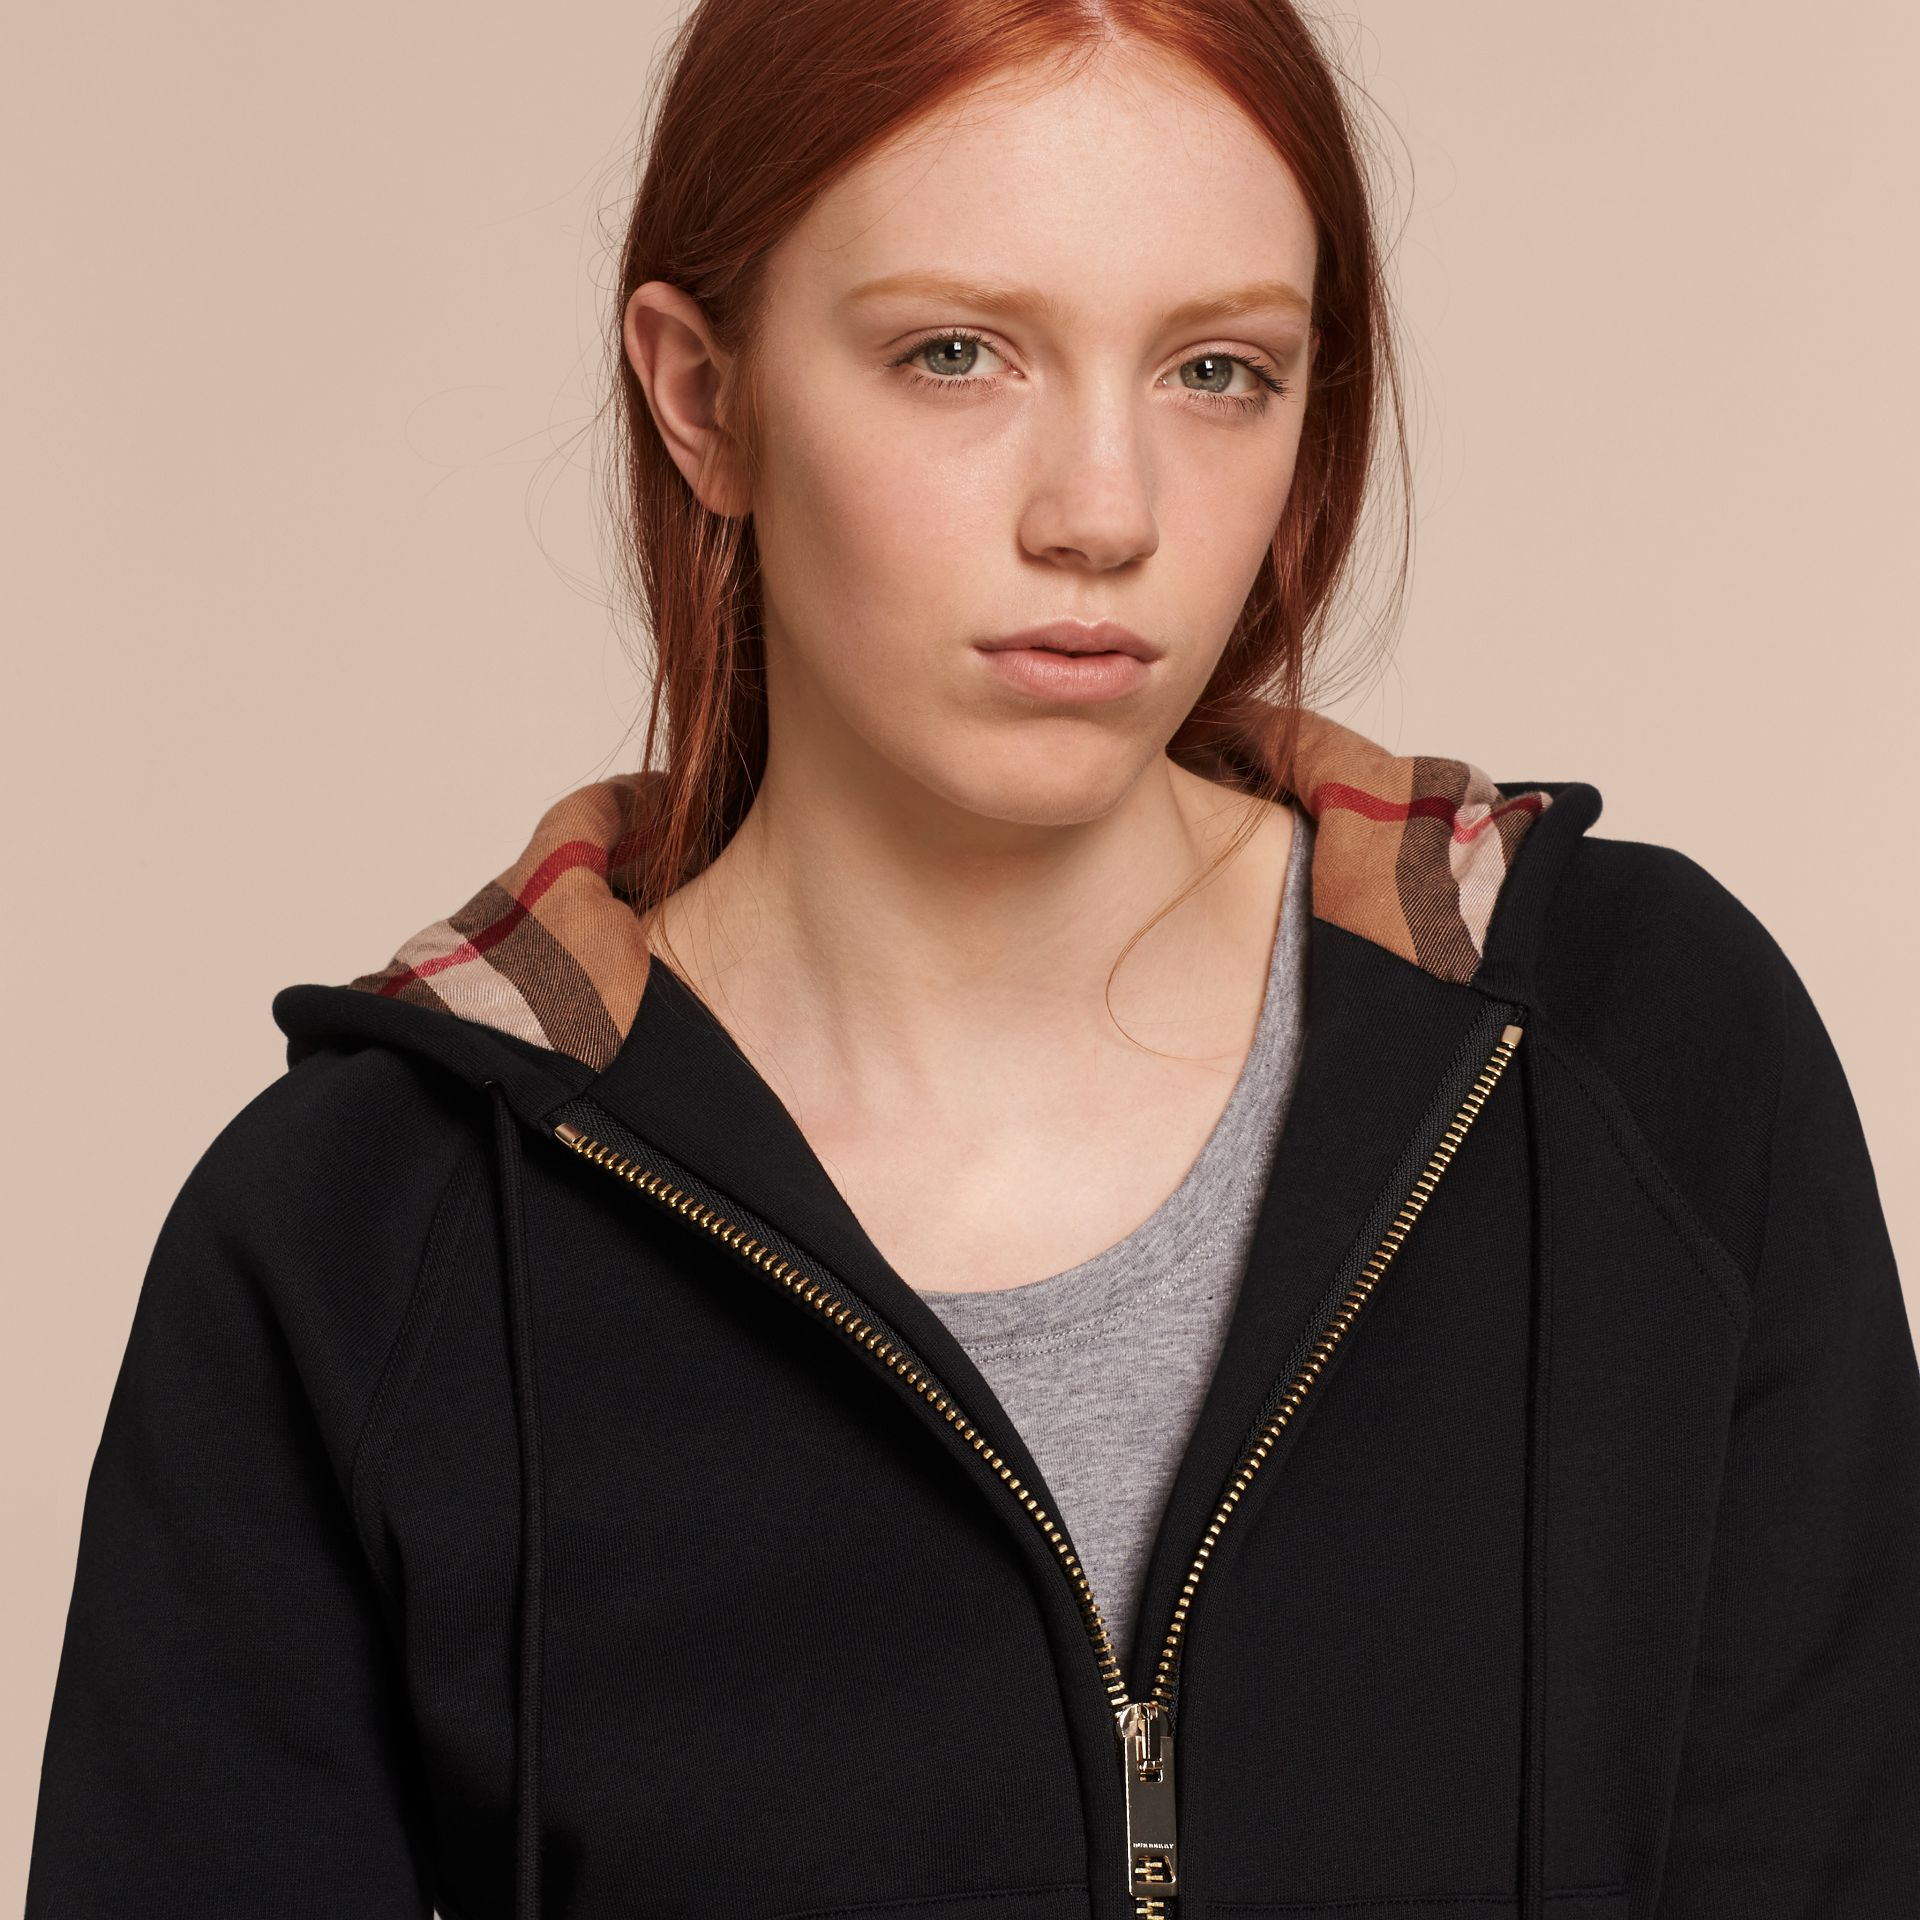 Hooded Zip-front Cotton Blend  Sweatshirt in Black - Women | Burberry Australia - gallery image 5